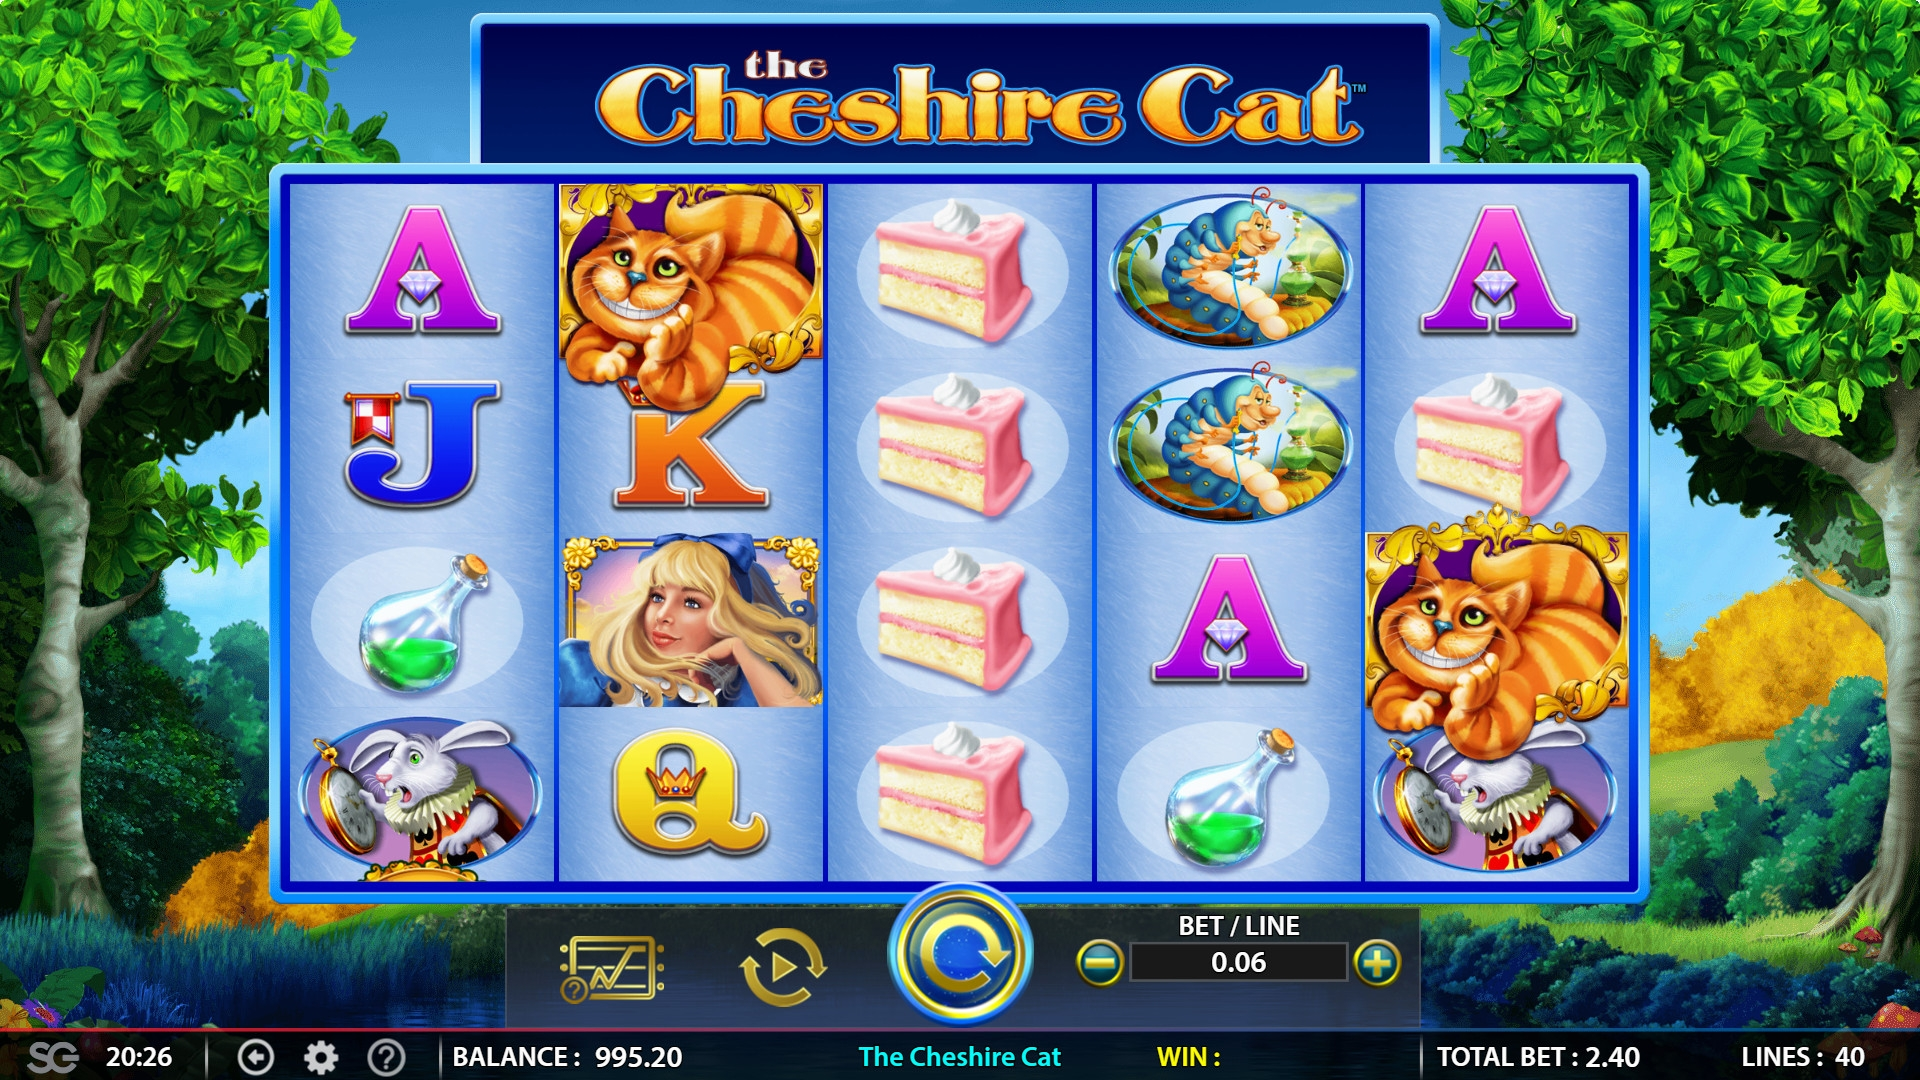 The Cheshire Cat (The Cheshire Cat) from category Slots